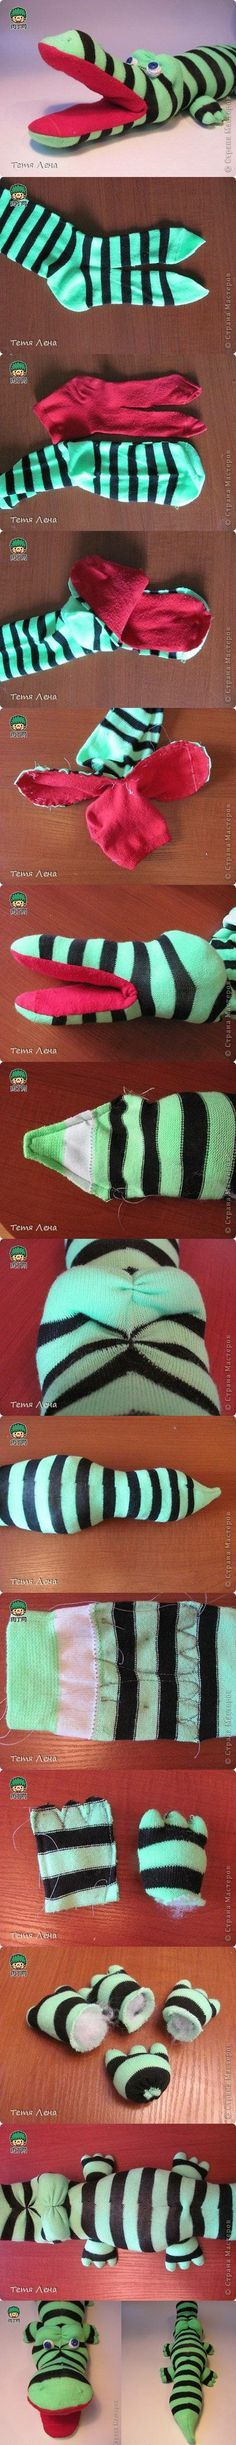 DIY Sock Crocodile